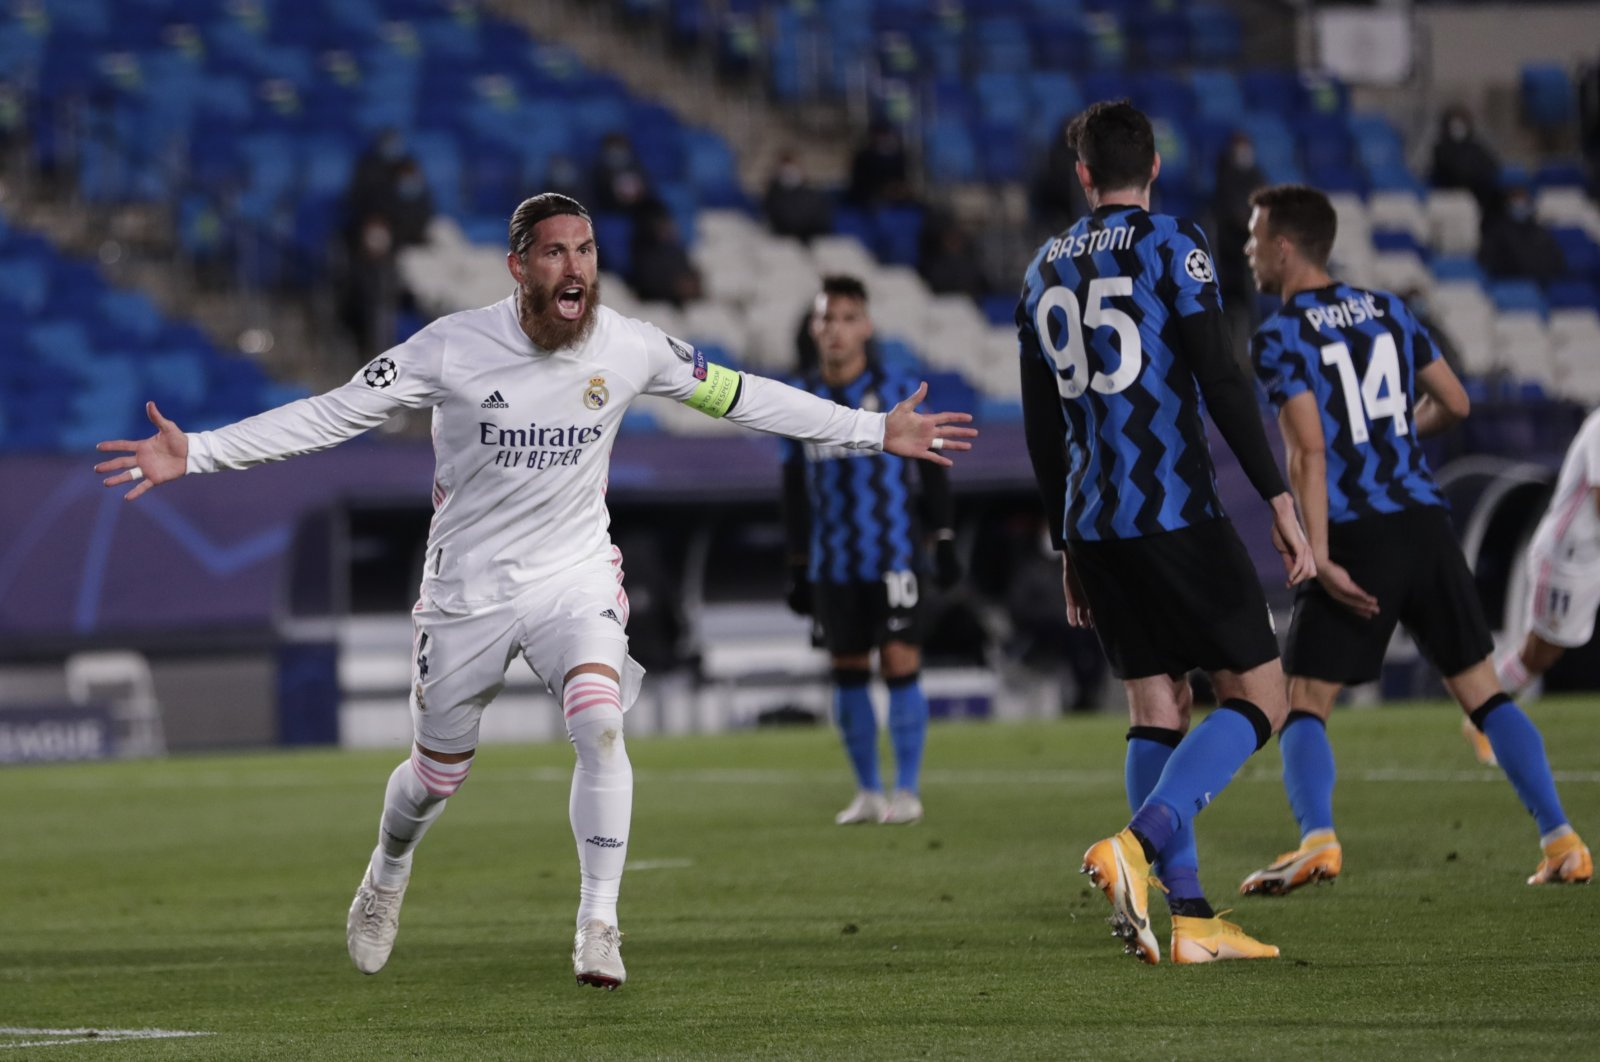 Real Madrid's Sergio Ramos celebrates after scoring a goal during the Champions League match against Inter Milan, in Madrid, Spain, Nov. 3, 2020. (AP Photo)